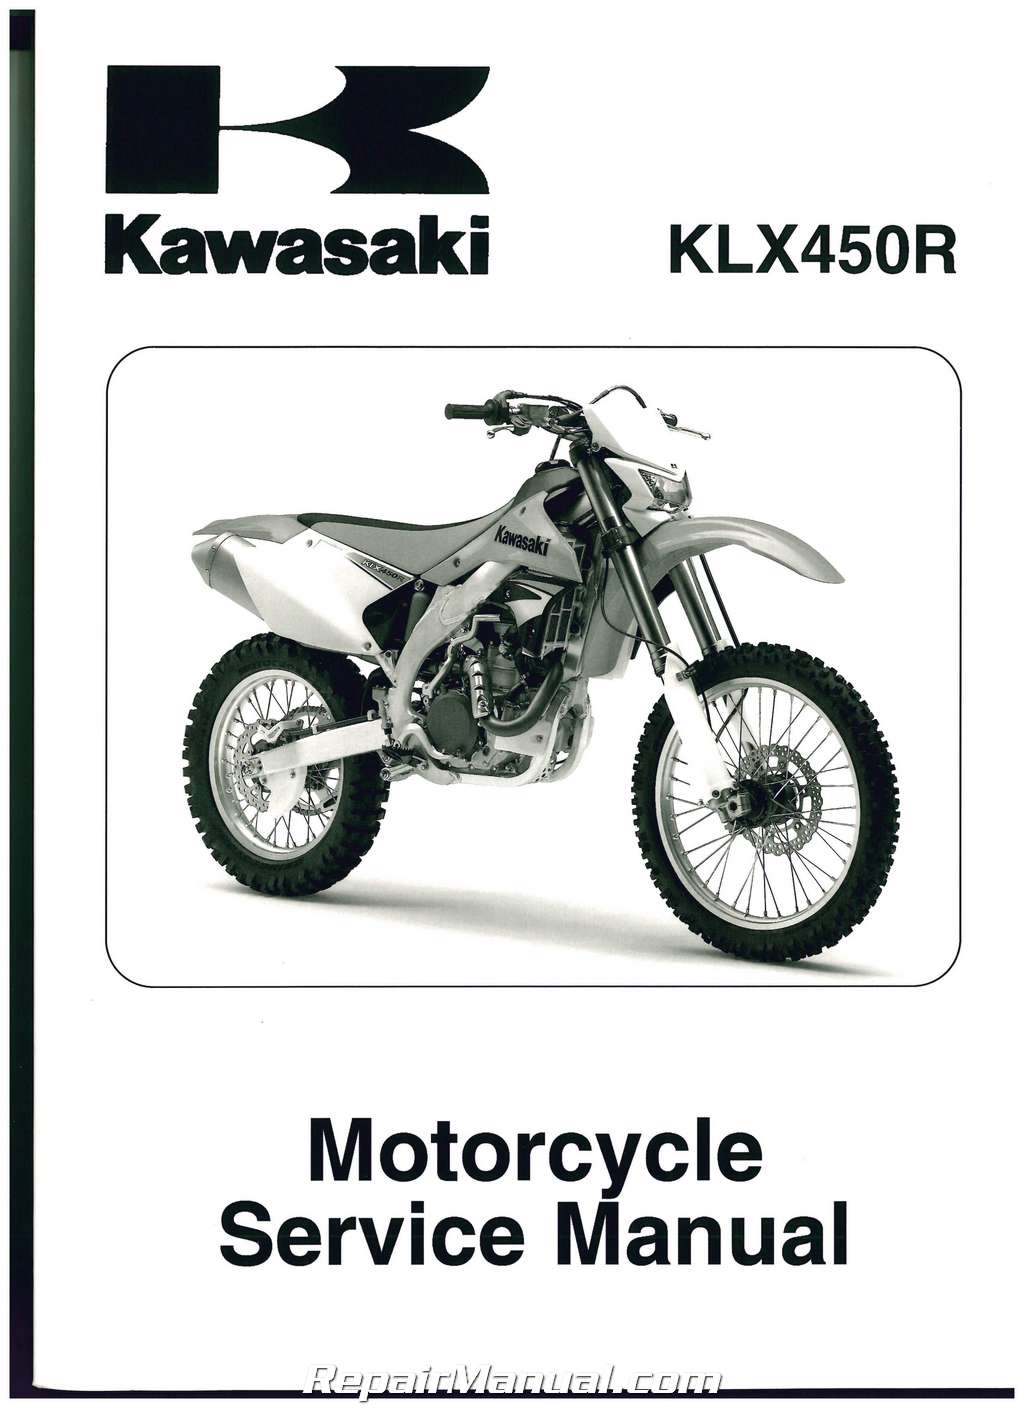 2008 2014 Kawasaki Klx450r Motorcycle Service Manual